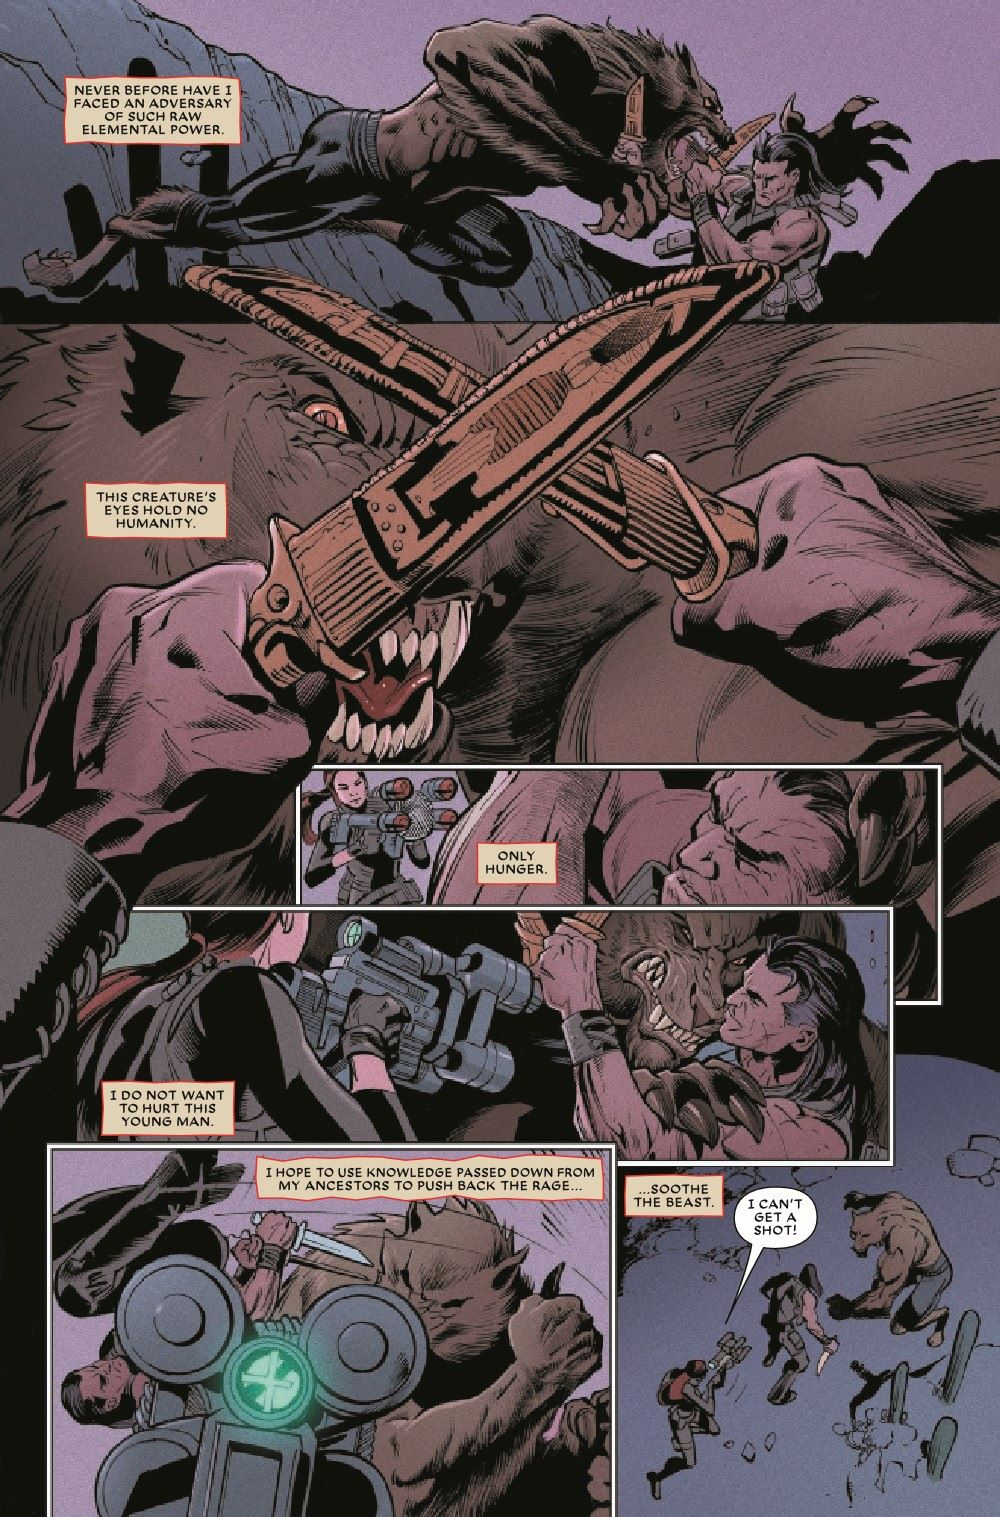 WBN2020003_Preview-3 ComicList Previews: WEREWOLF BY NIGHT #3 (OF 4)